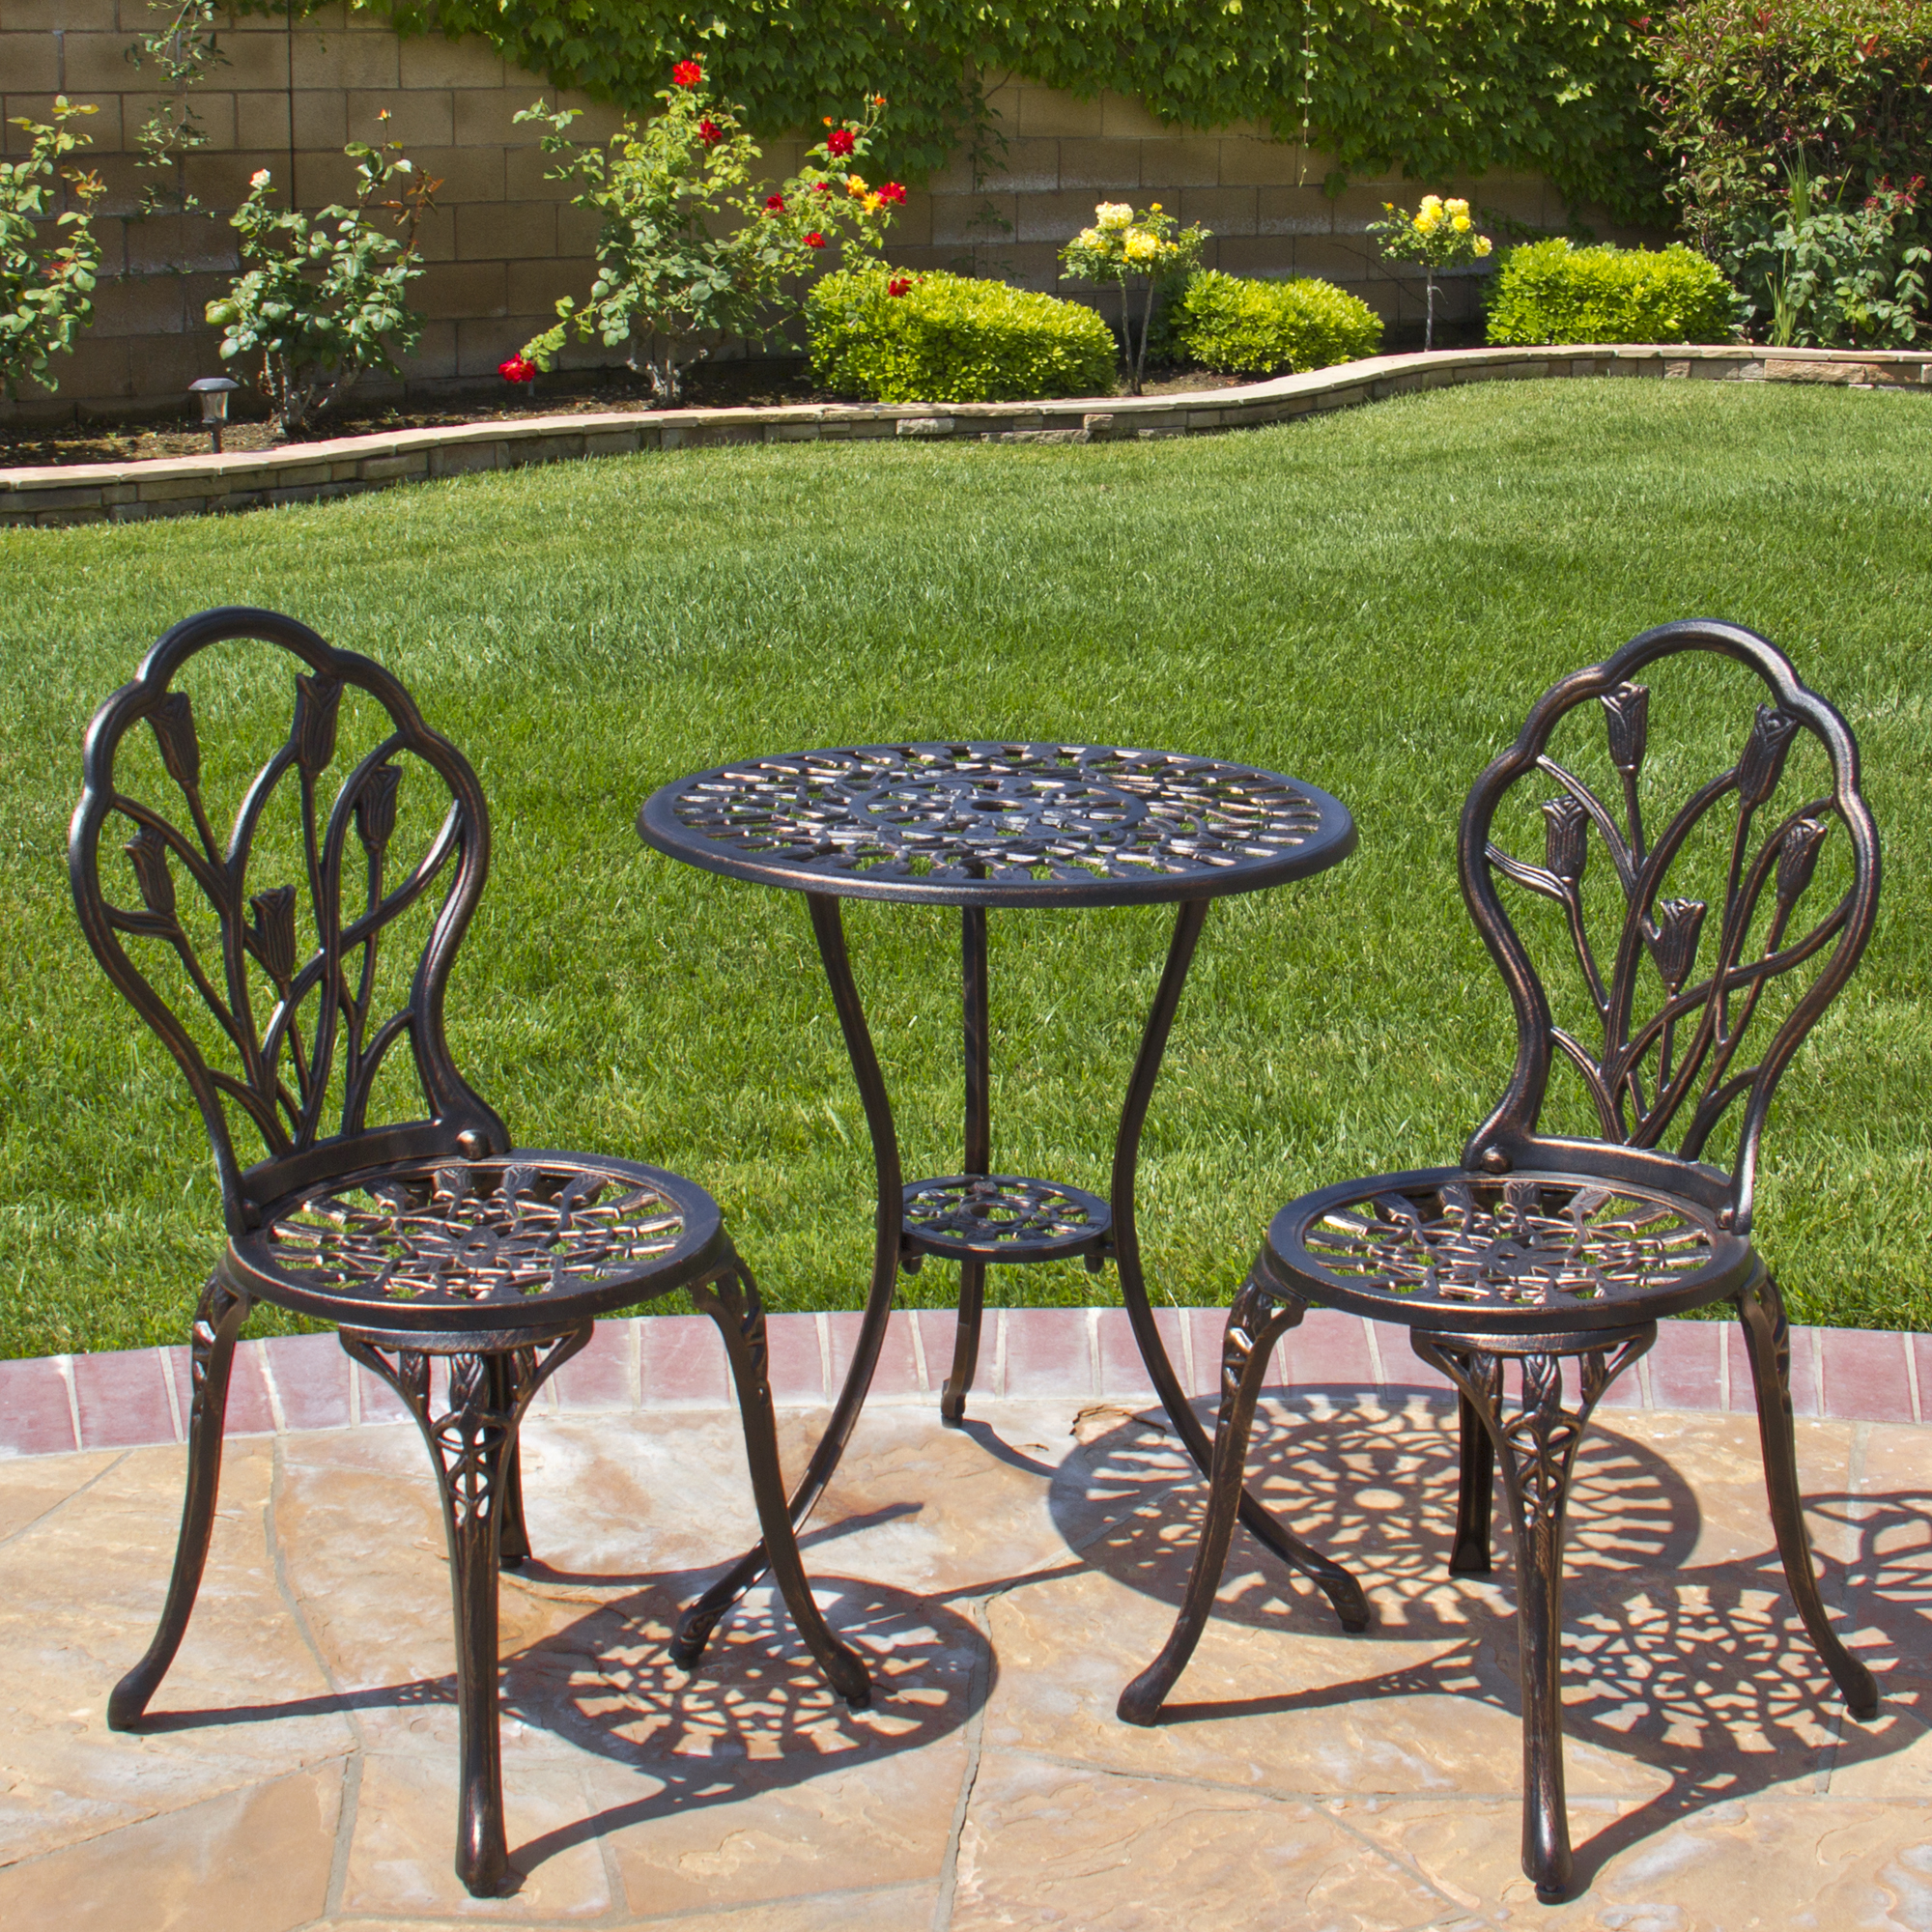 Round Table Patio Furniture Sets Best Choice Products Antique Cast Aluminum 3 Piece Outdoor Bistro